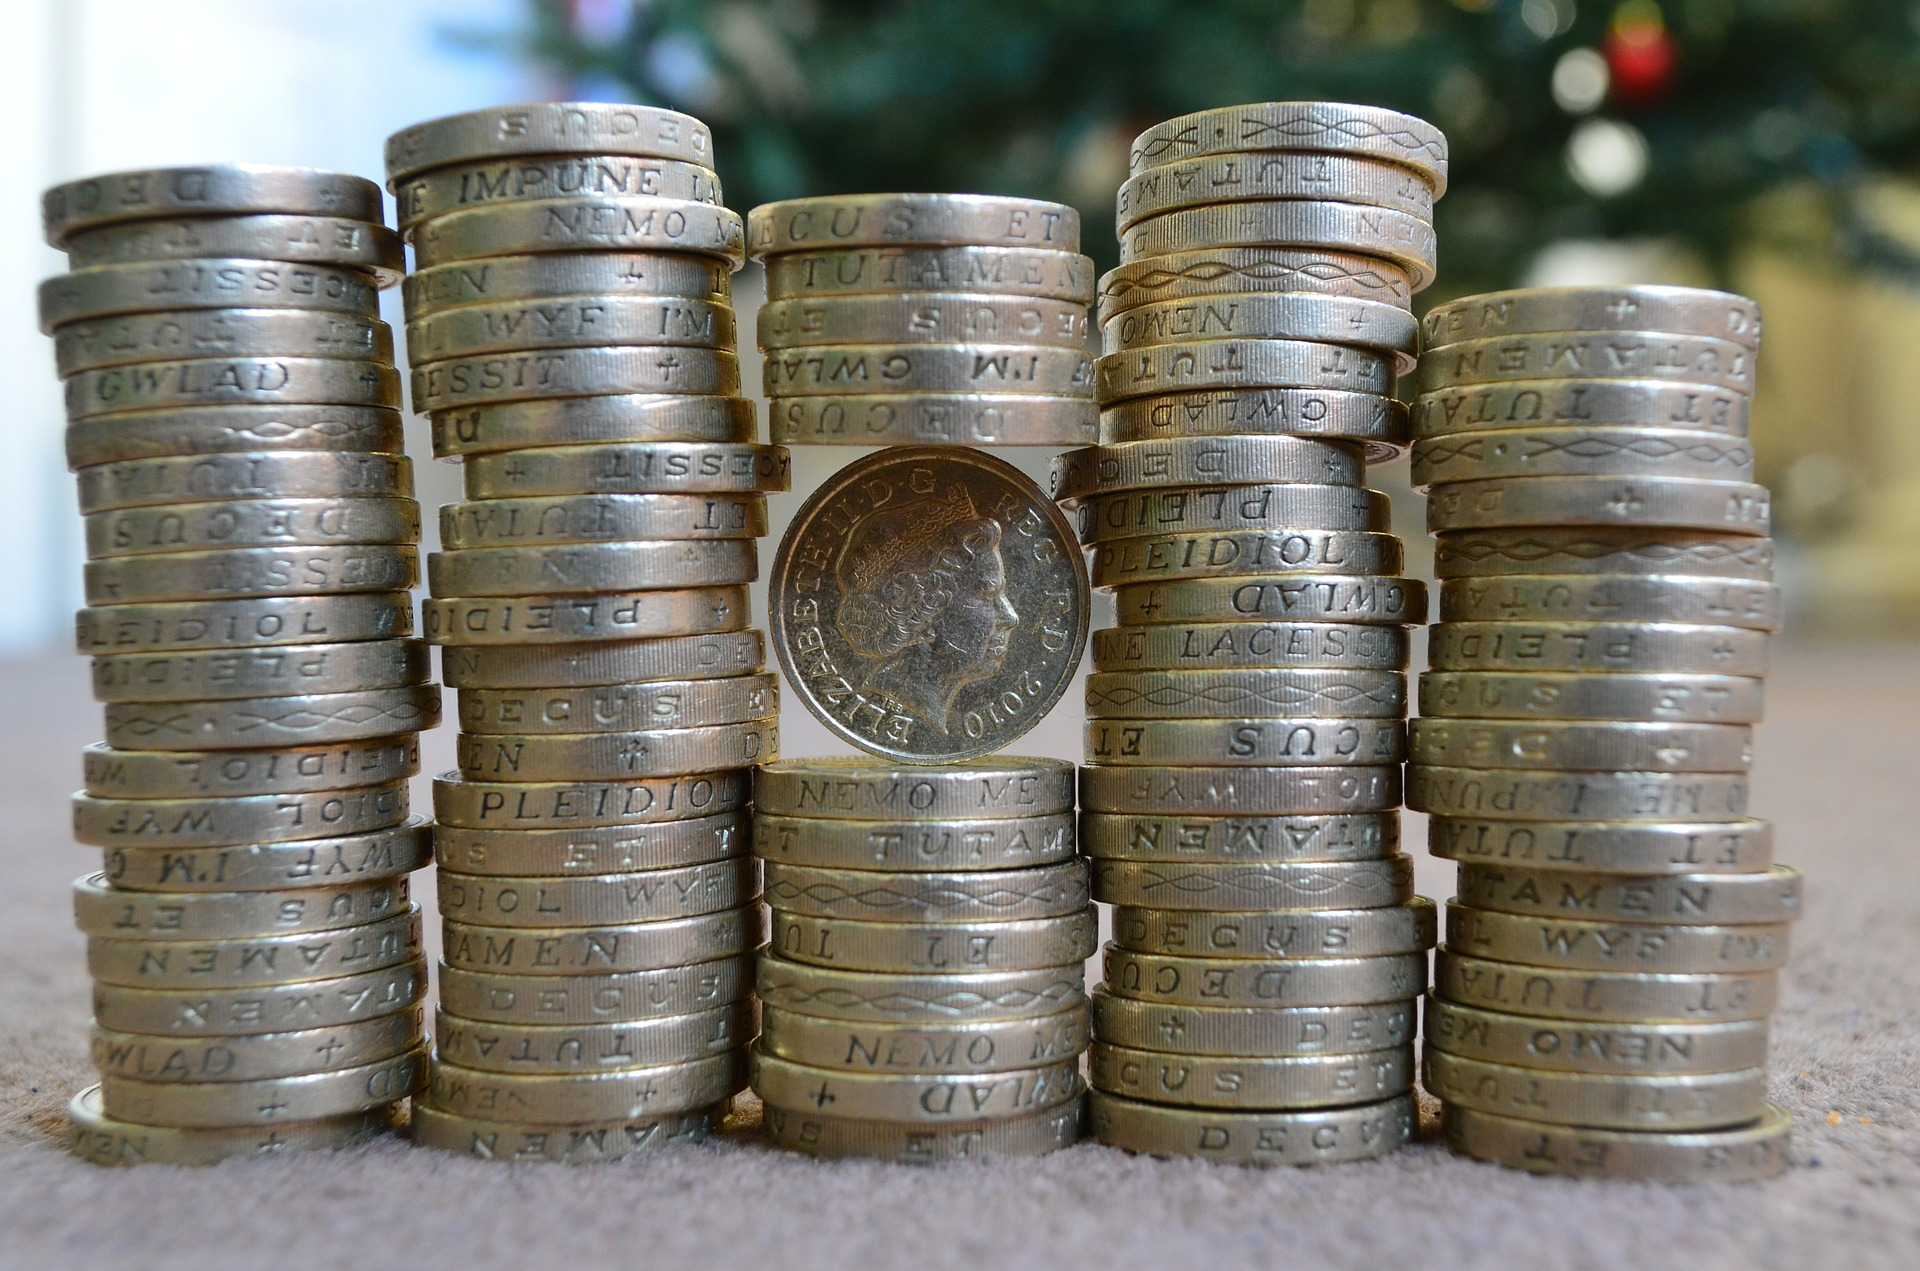 Money Saving Tips-Even Small Changes Can Add Up By Nevo Barchad I think one of the biggest money saving tips people overlook is that even small changes can add up quickly. I know I didn't pay much attention to a few cents savings here or a dollar there